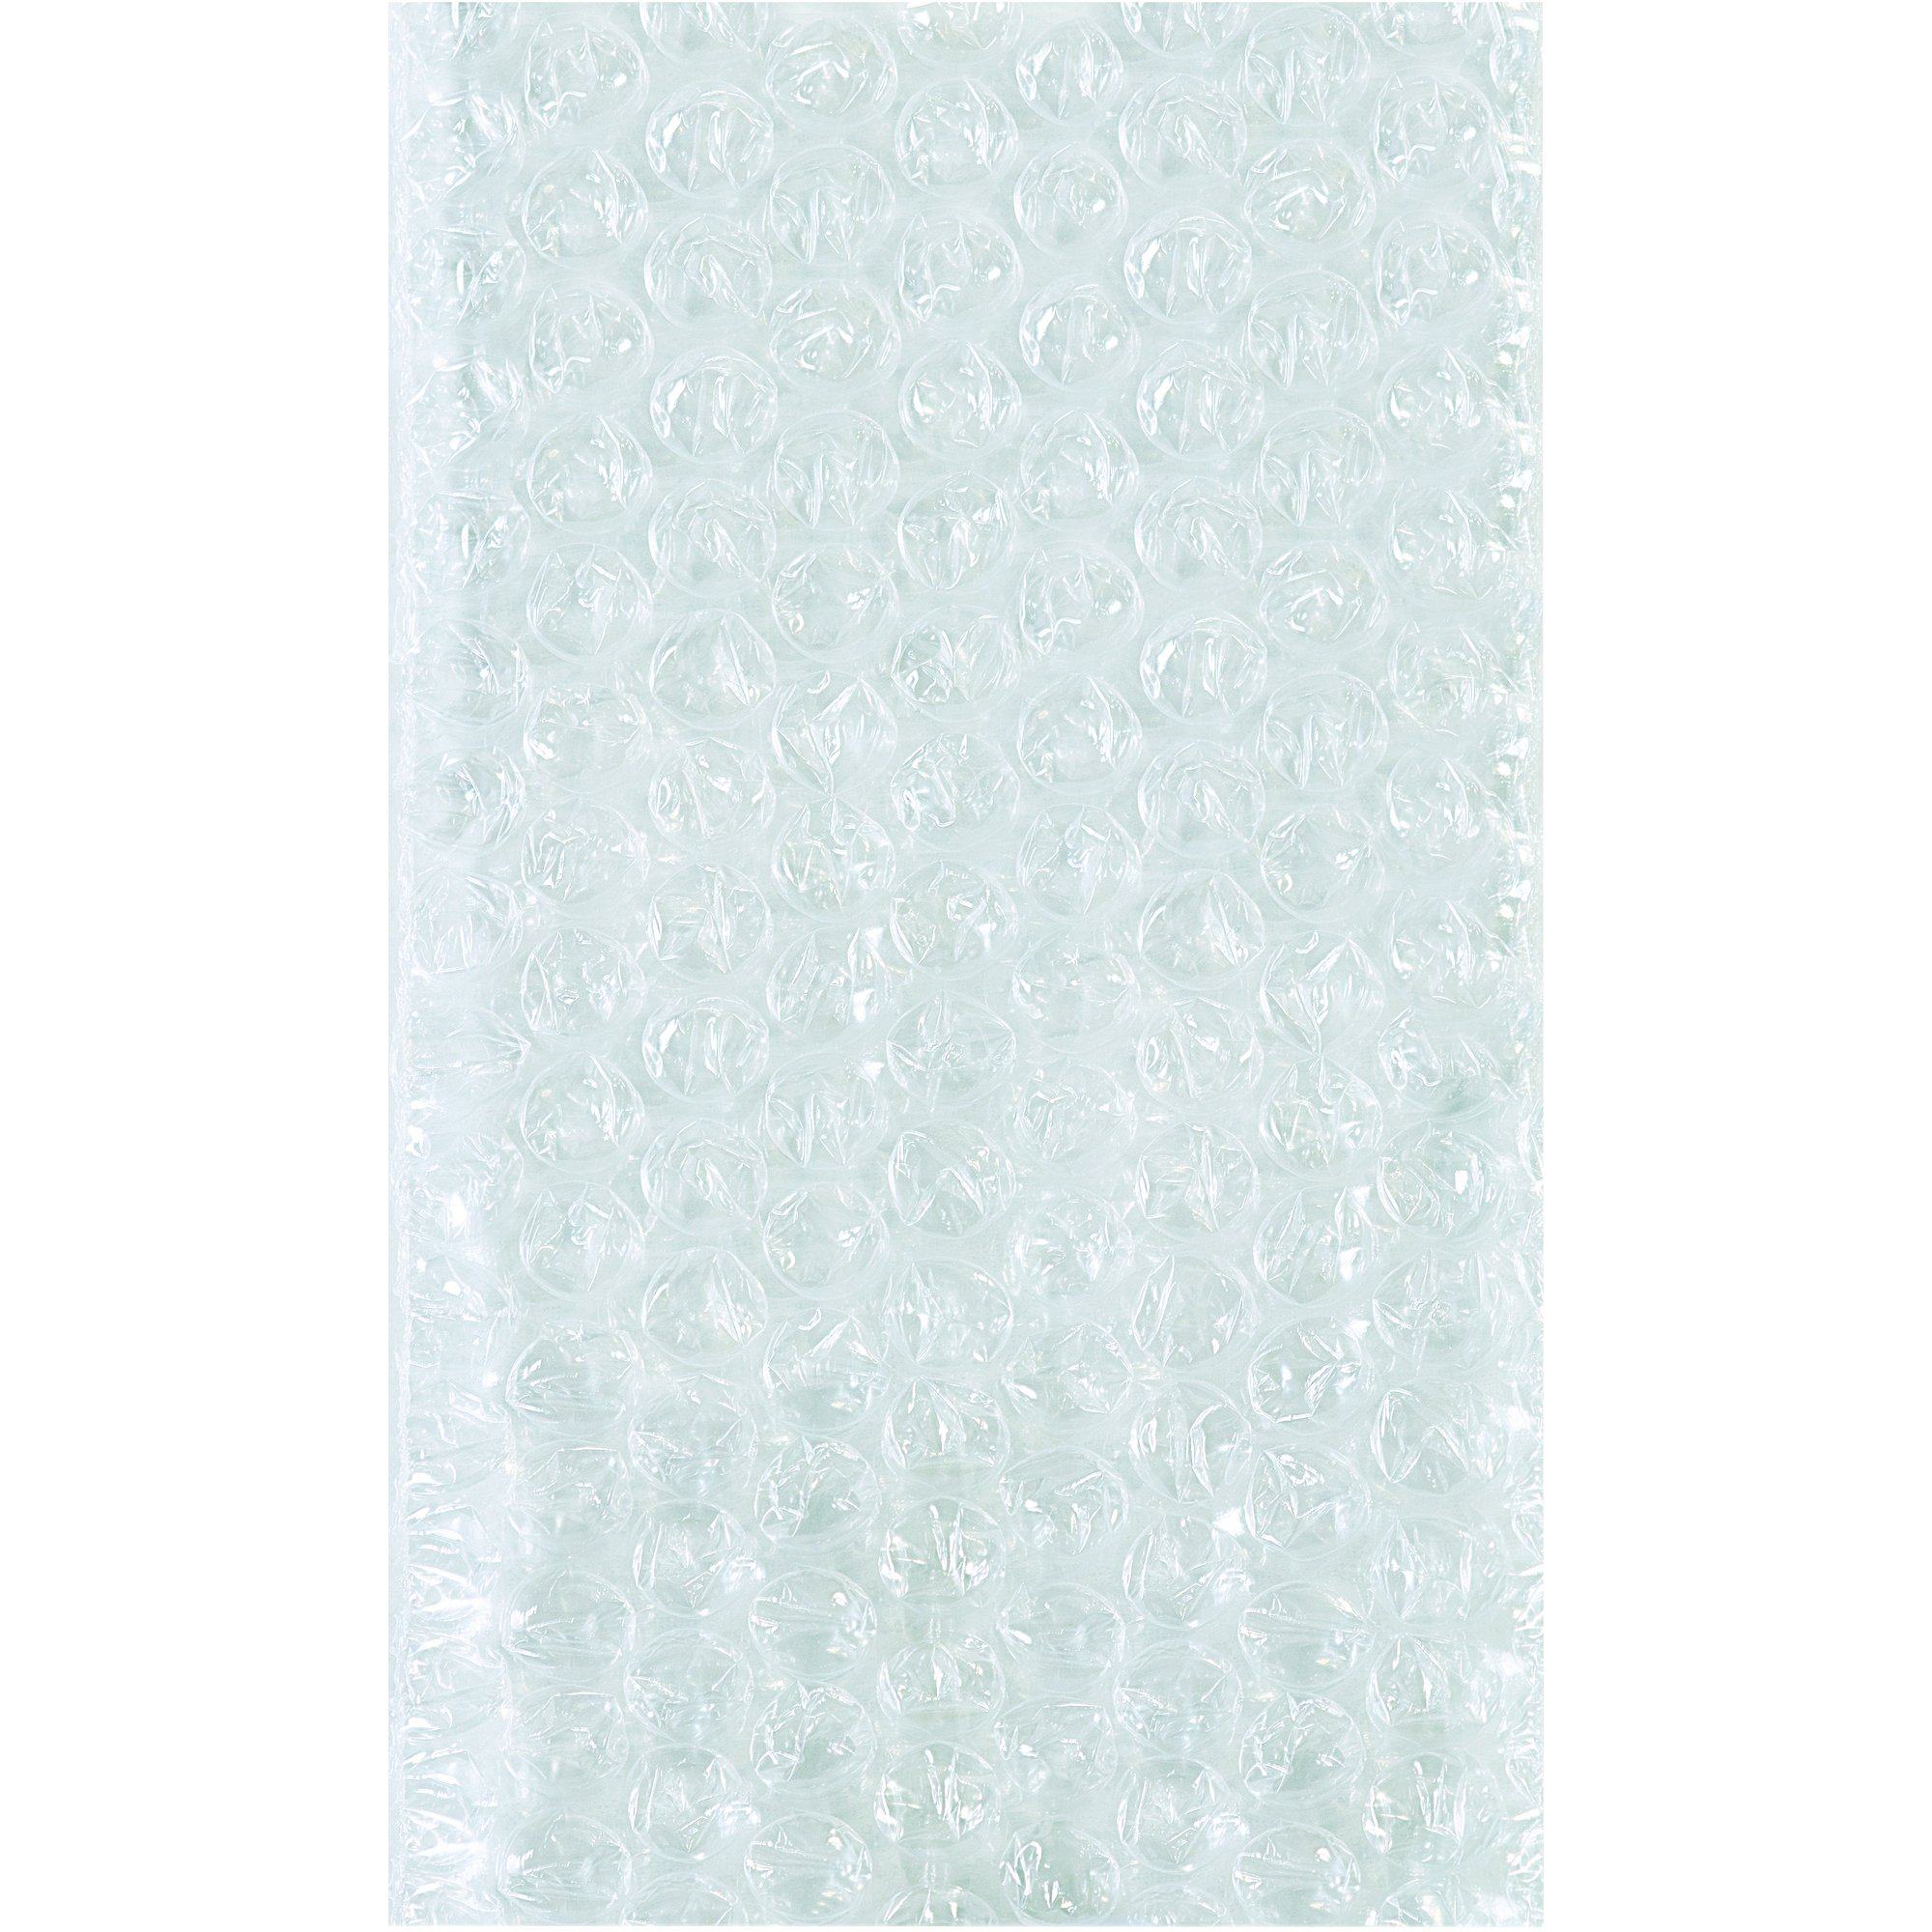 """Ship Now Supply SNBOB1824F Flush Cut Bubble Pouches, 18"""" x 24"""", 18"""" Width, 0.188"""" Height, 24"""" Length, Clear (Pack of 100)"""